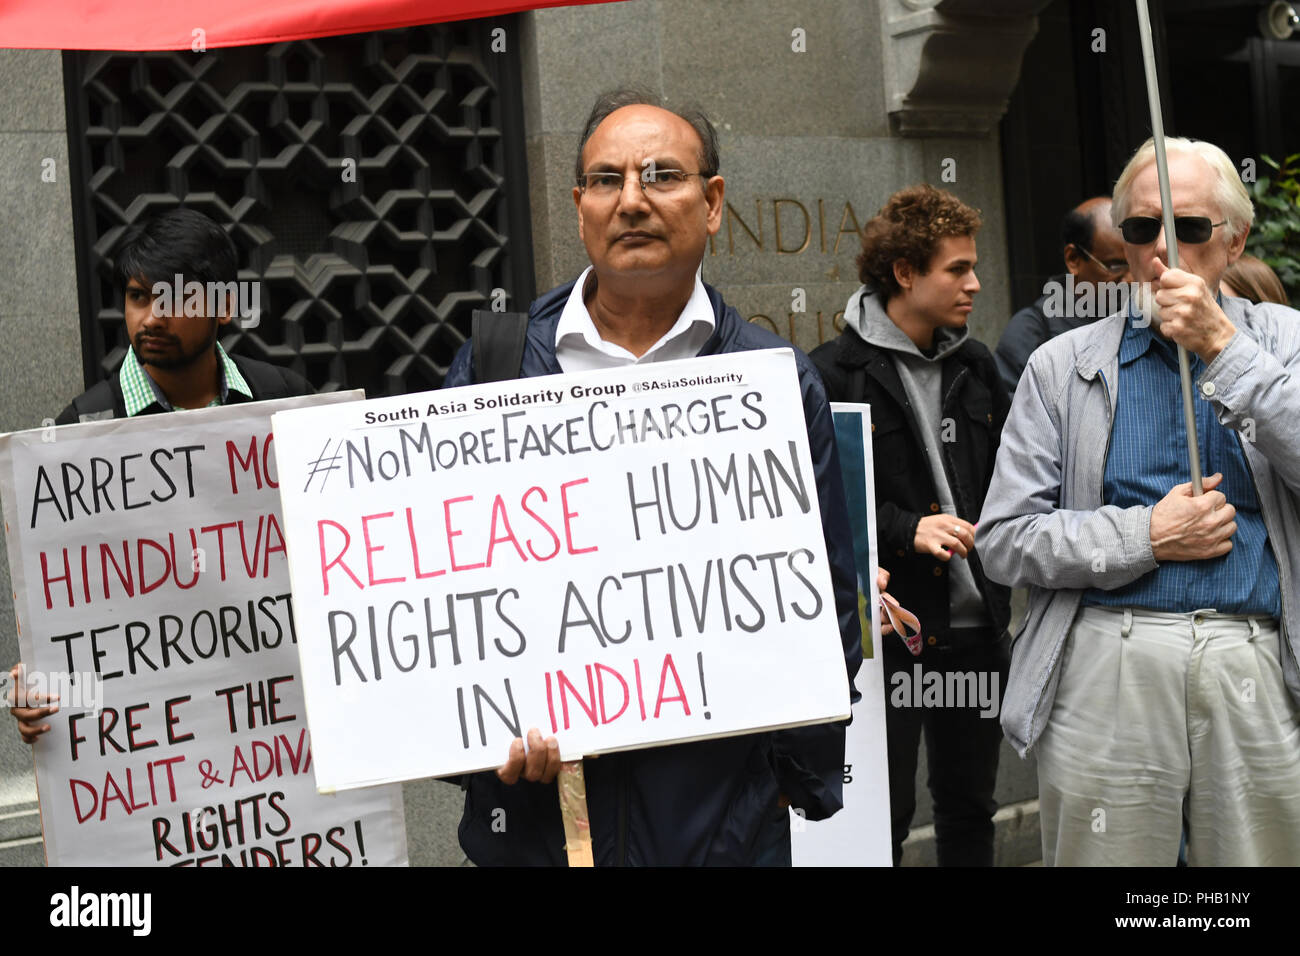 London, UK. 31st August 2018. South Asia Solidarity Group host a Urgent London Protest against Modi regime unleashed a massive witchhunt against a whole range of dissenting voices targeting some of India's most credible and respected human rights with false allegations Credit: Picture Capital/Alamy Live News - Stock Image